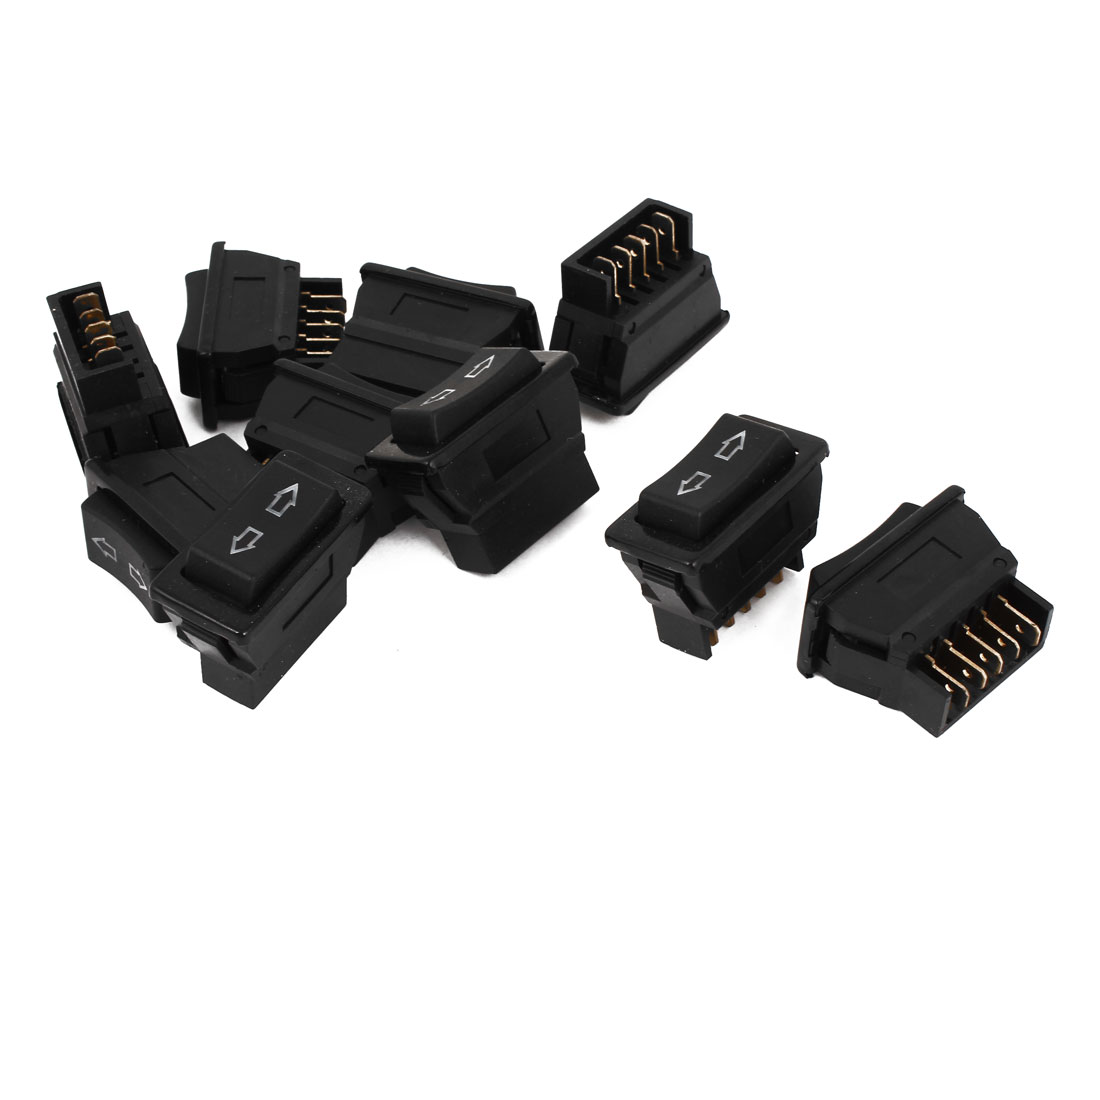 Unique Bargains 10pcs DC 12V Momentary 5 Pins DPDT Power Window Master Switch for Car